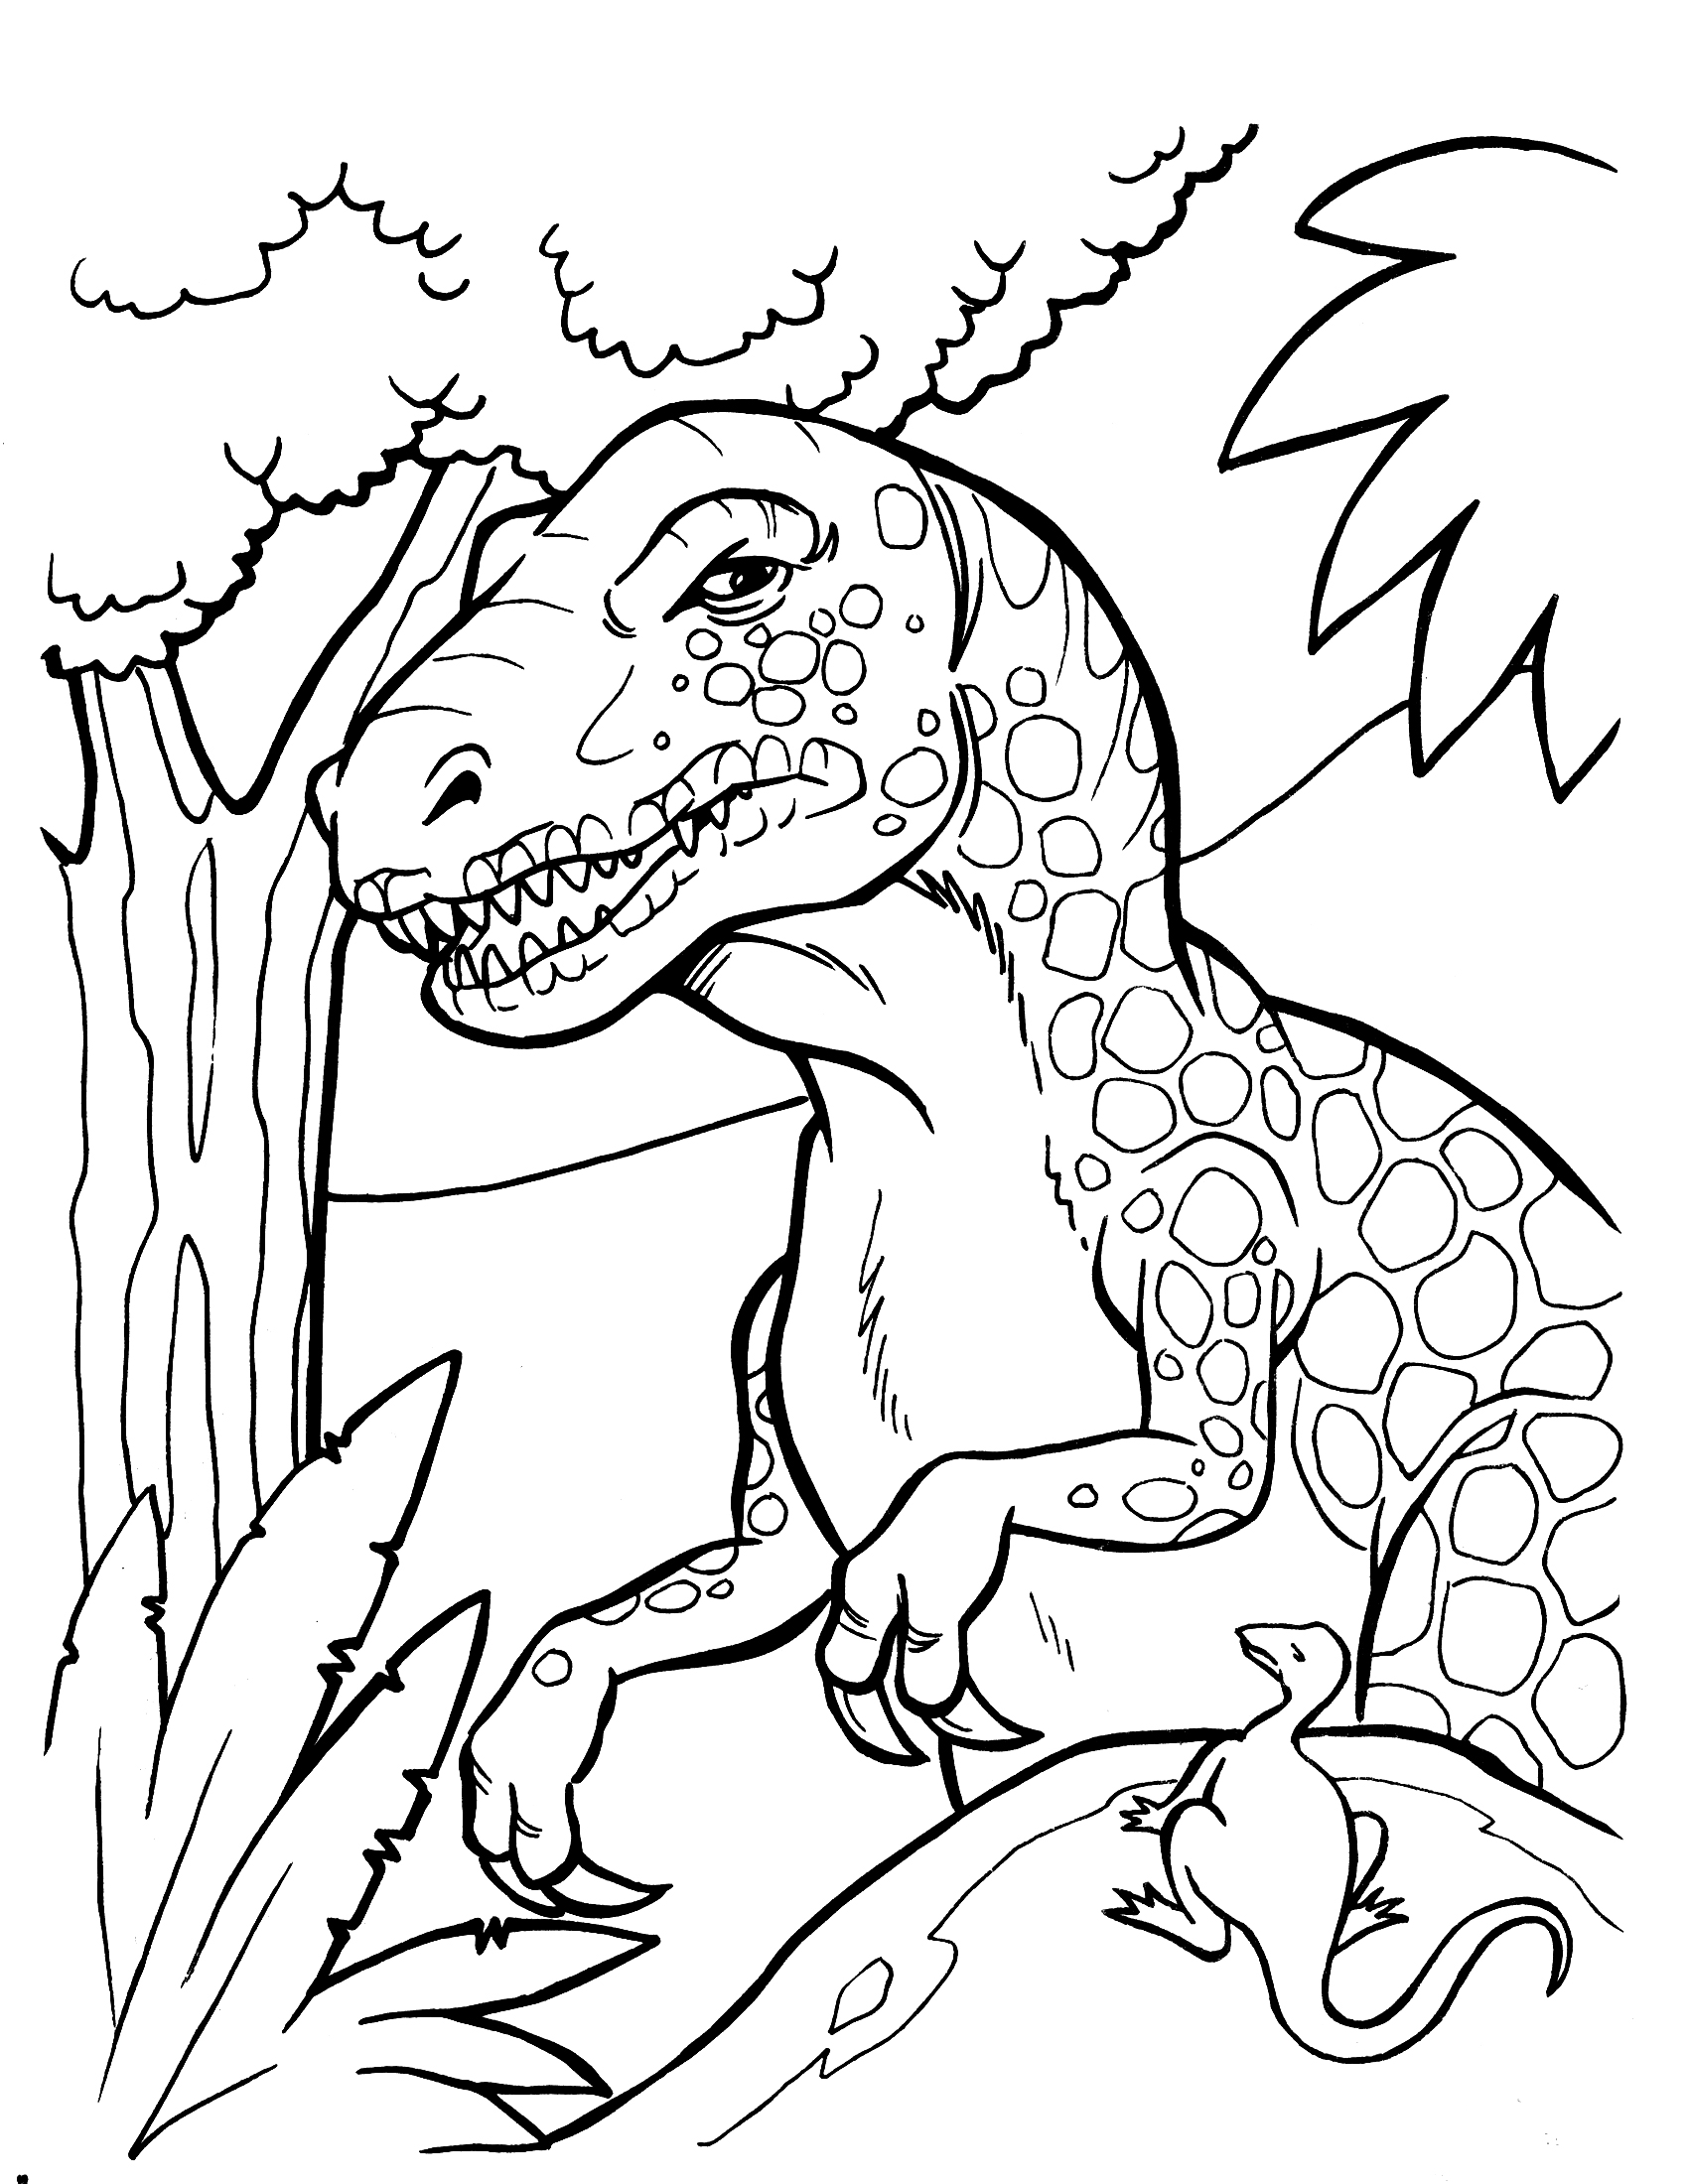 free printable dinosaur coloring pages coloring pages dinosaur free printable coloring pages dinosaur pages printable free coloring